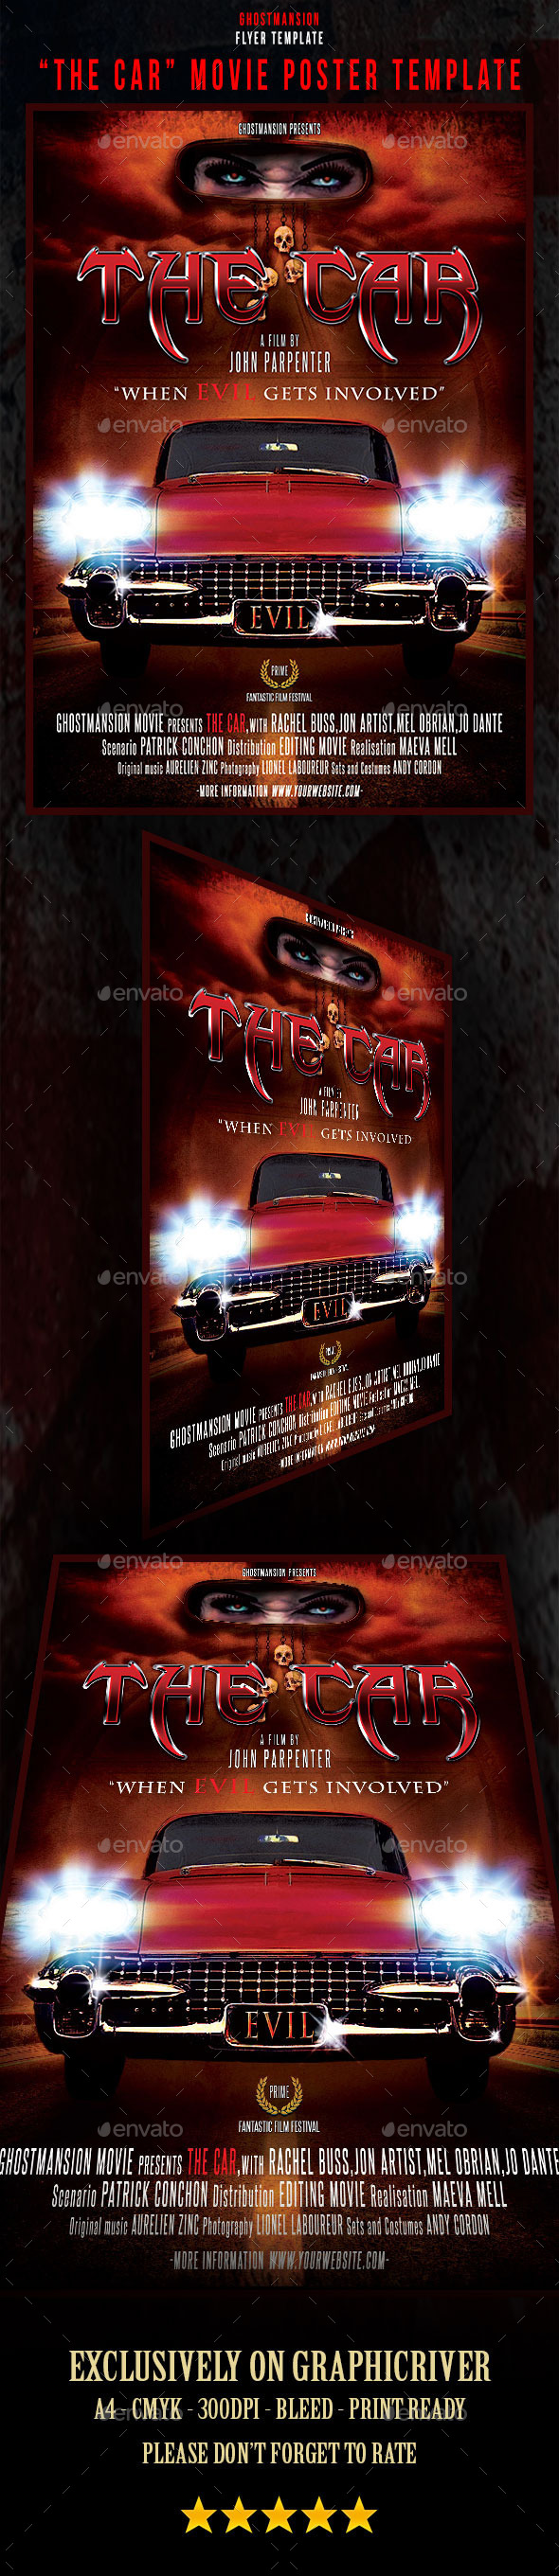 GraphicRiver The Car Movie Poster Template 9346291